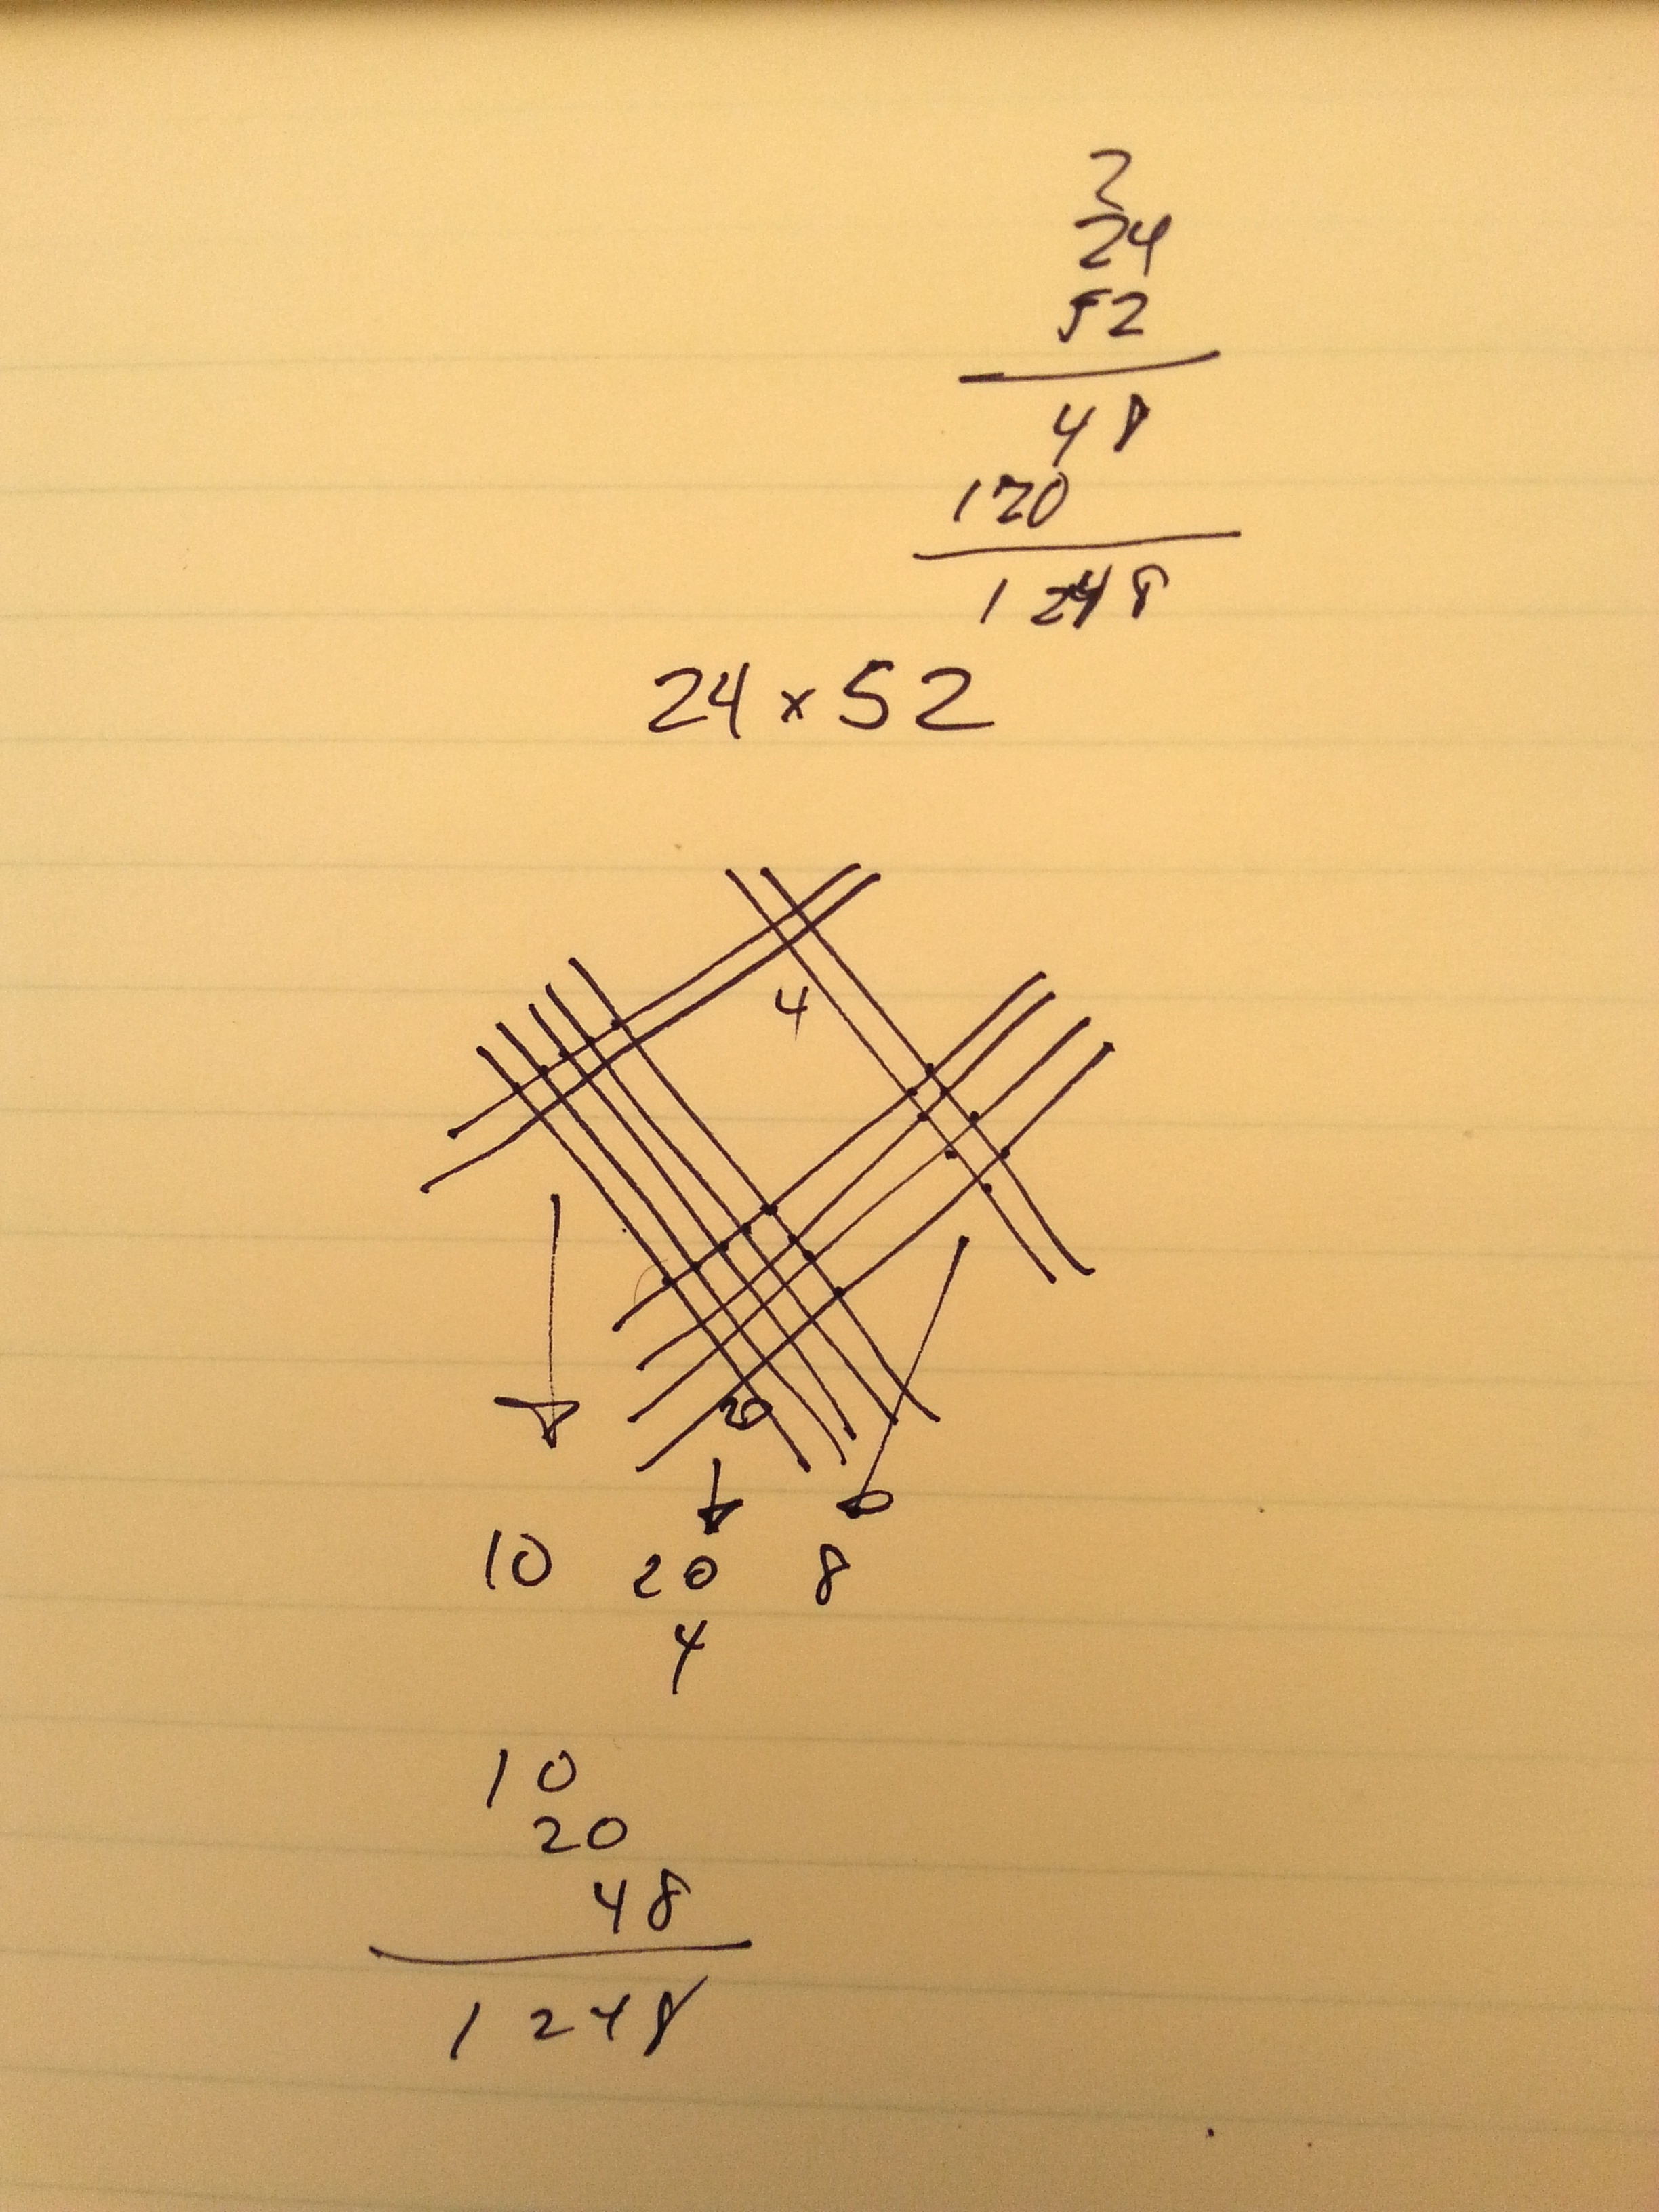 Drawing Lines For Multiplication : Multiply numbers by drawing lines as seen through perivision